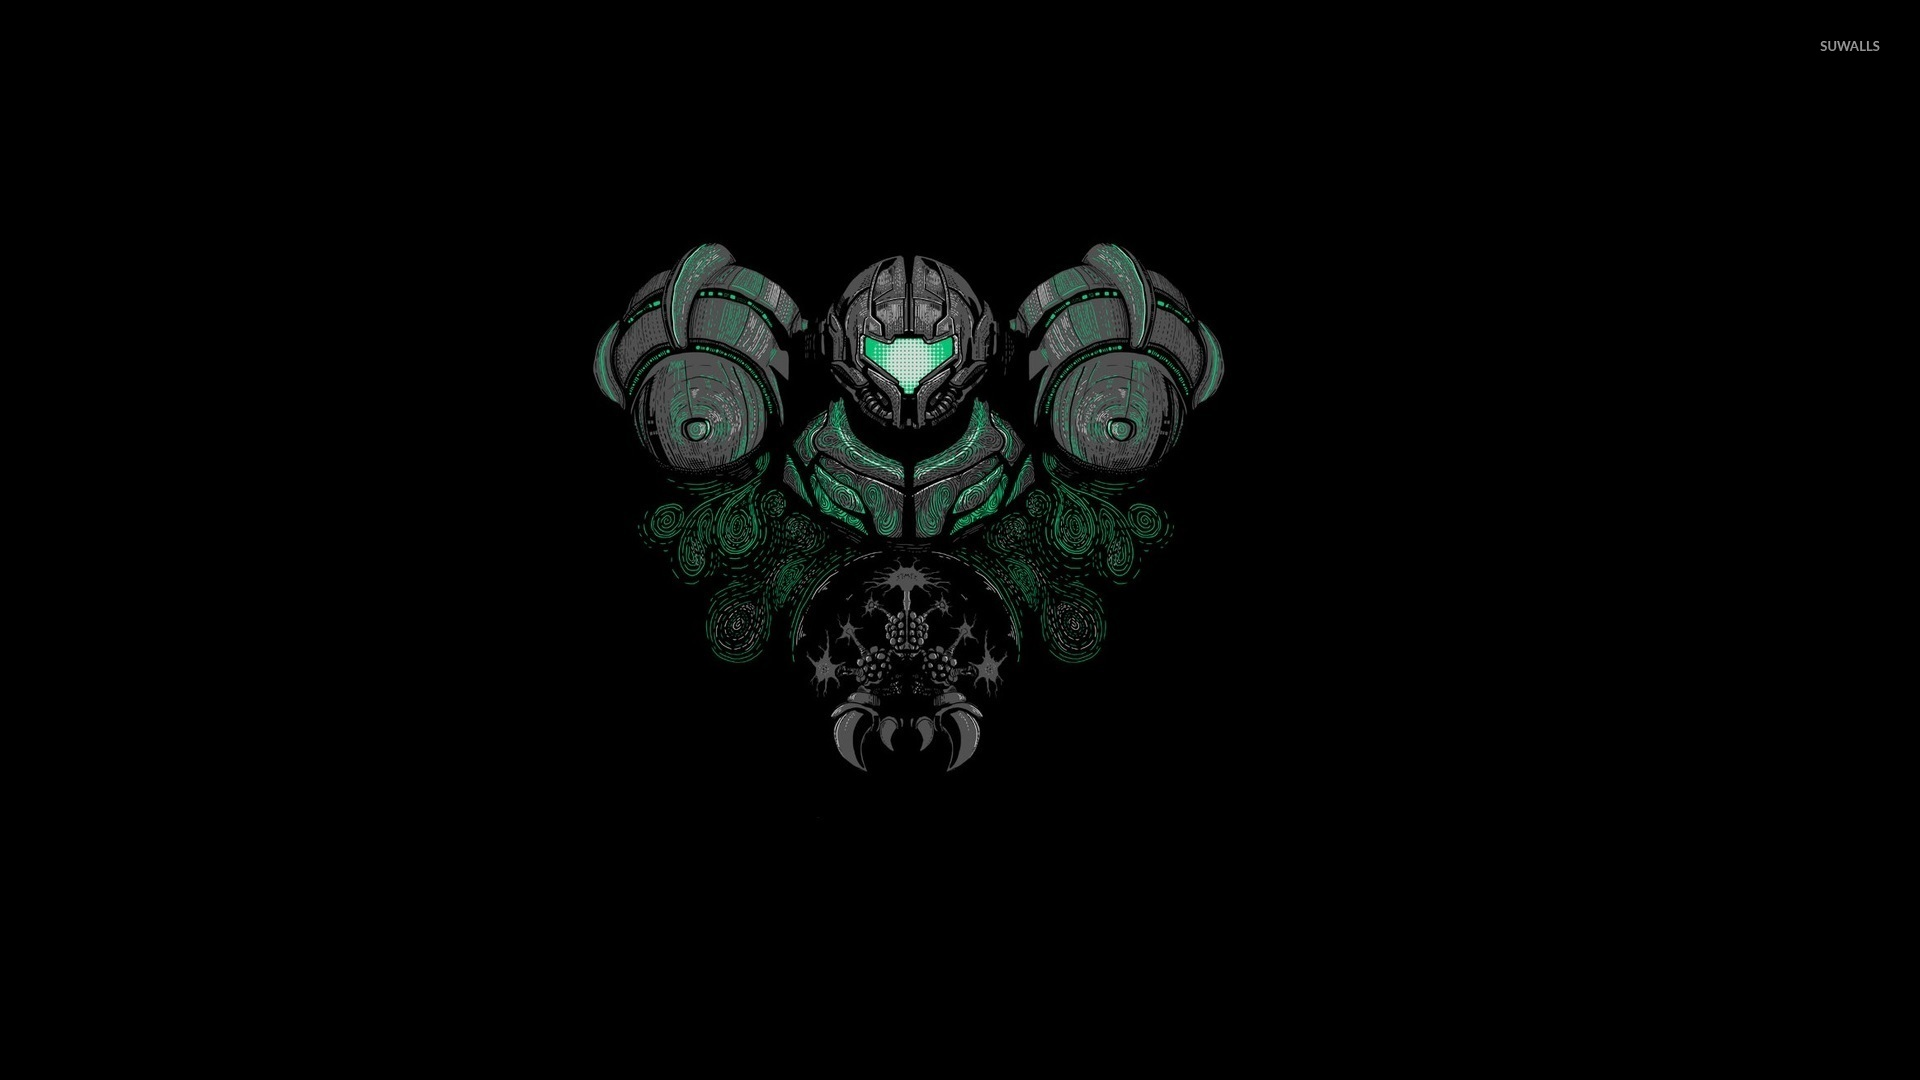 Metroid Prime 3 Wallpaper Game Wallpapers 44055